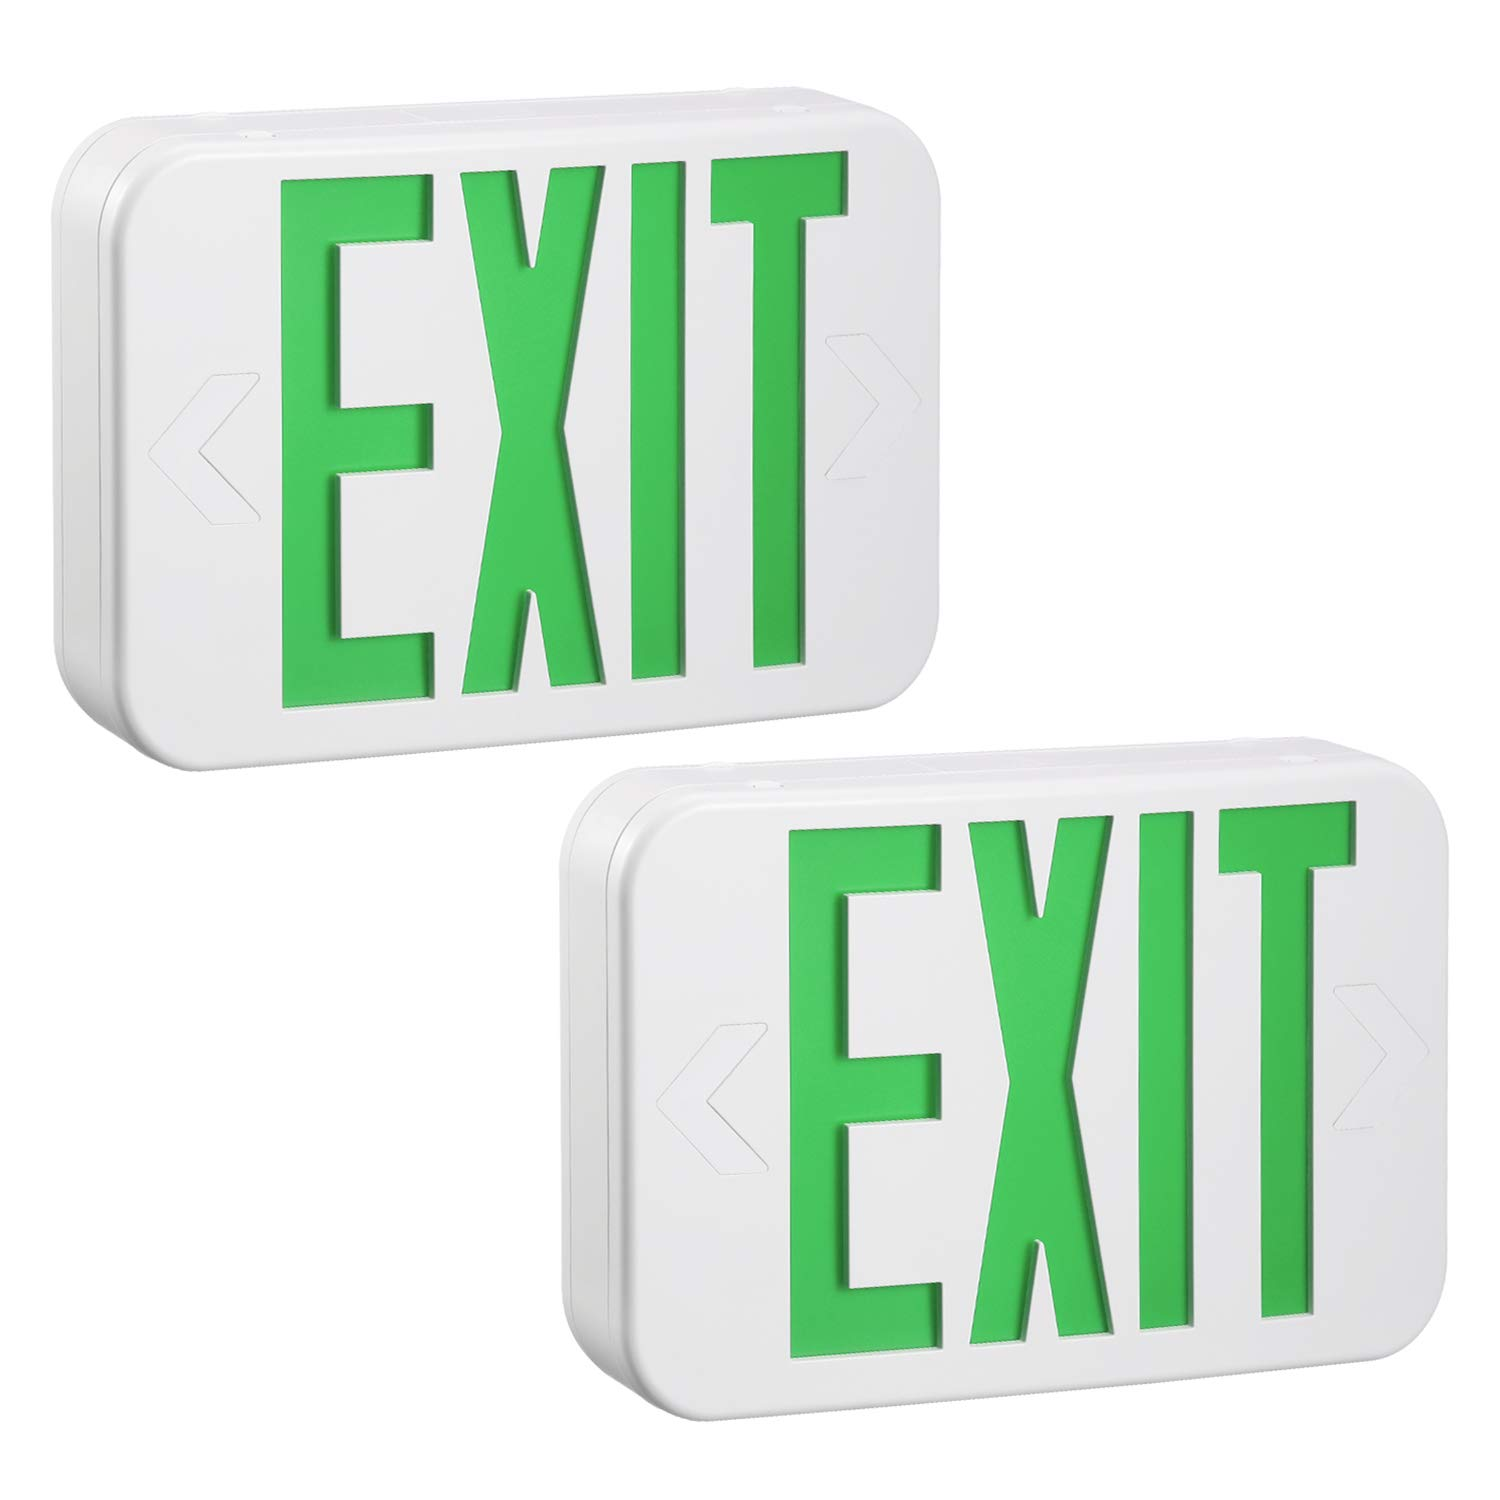 TORCHSTAR Green LED Exit Sign Emergency Light, Ceiling/Side/Back Mount, AC 120V/277V, Recharged Battery Included, Single/Double Face, UL-Listed, for Apartments, Hotels, Schools, Pack of 2